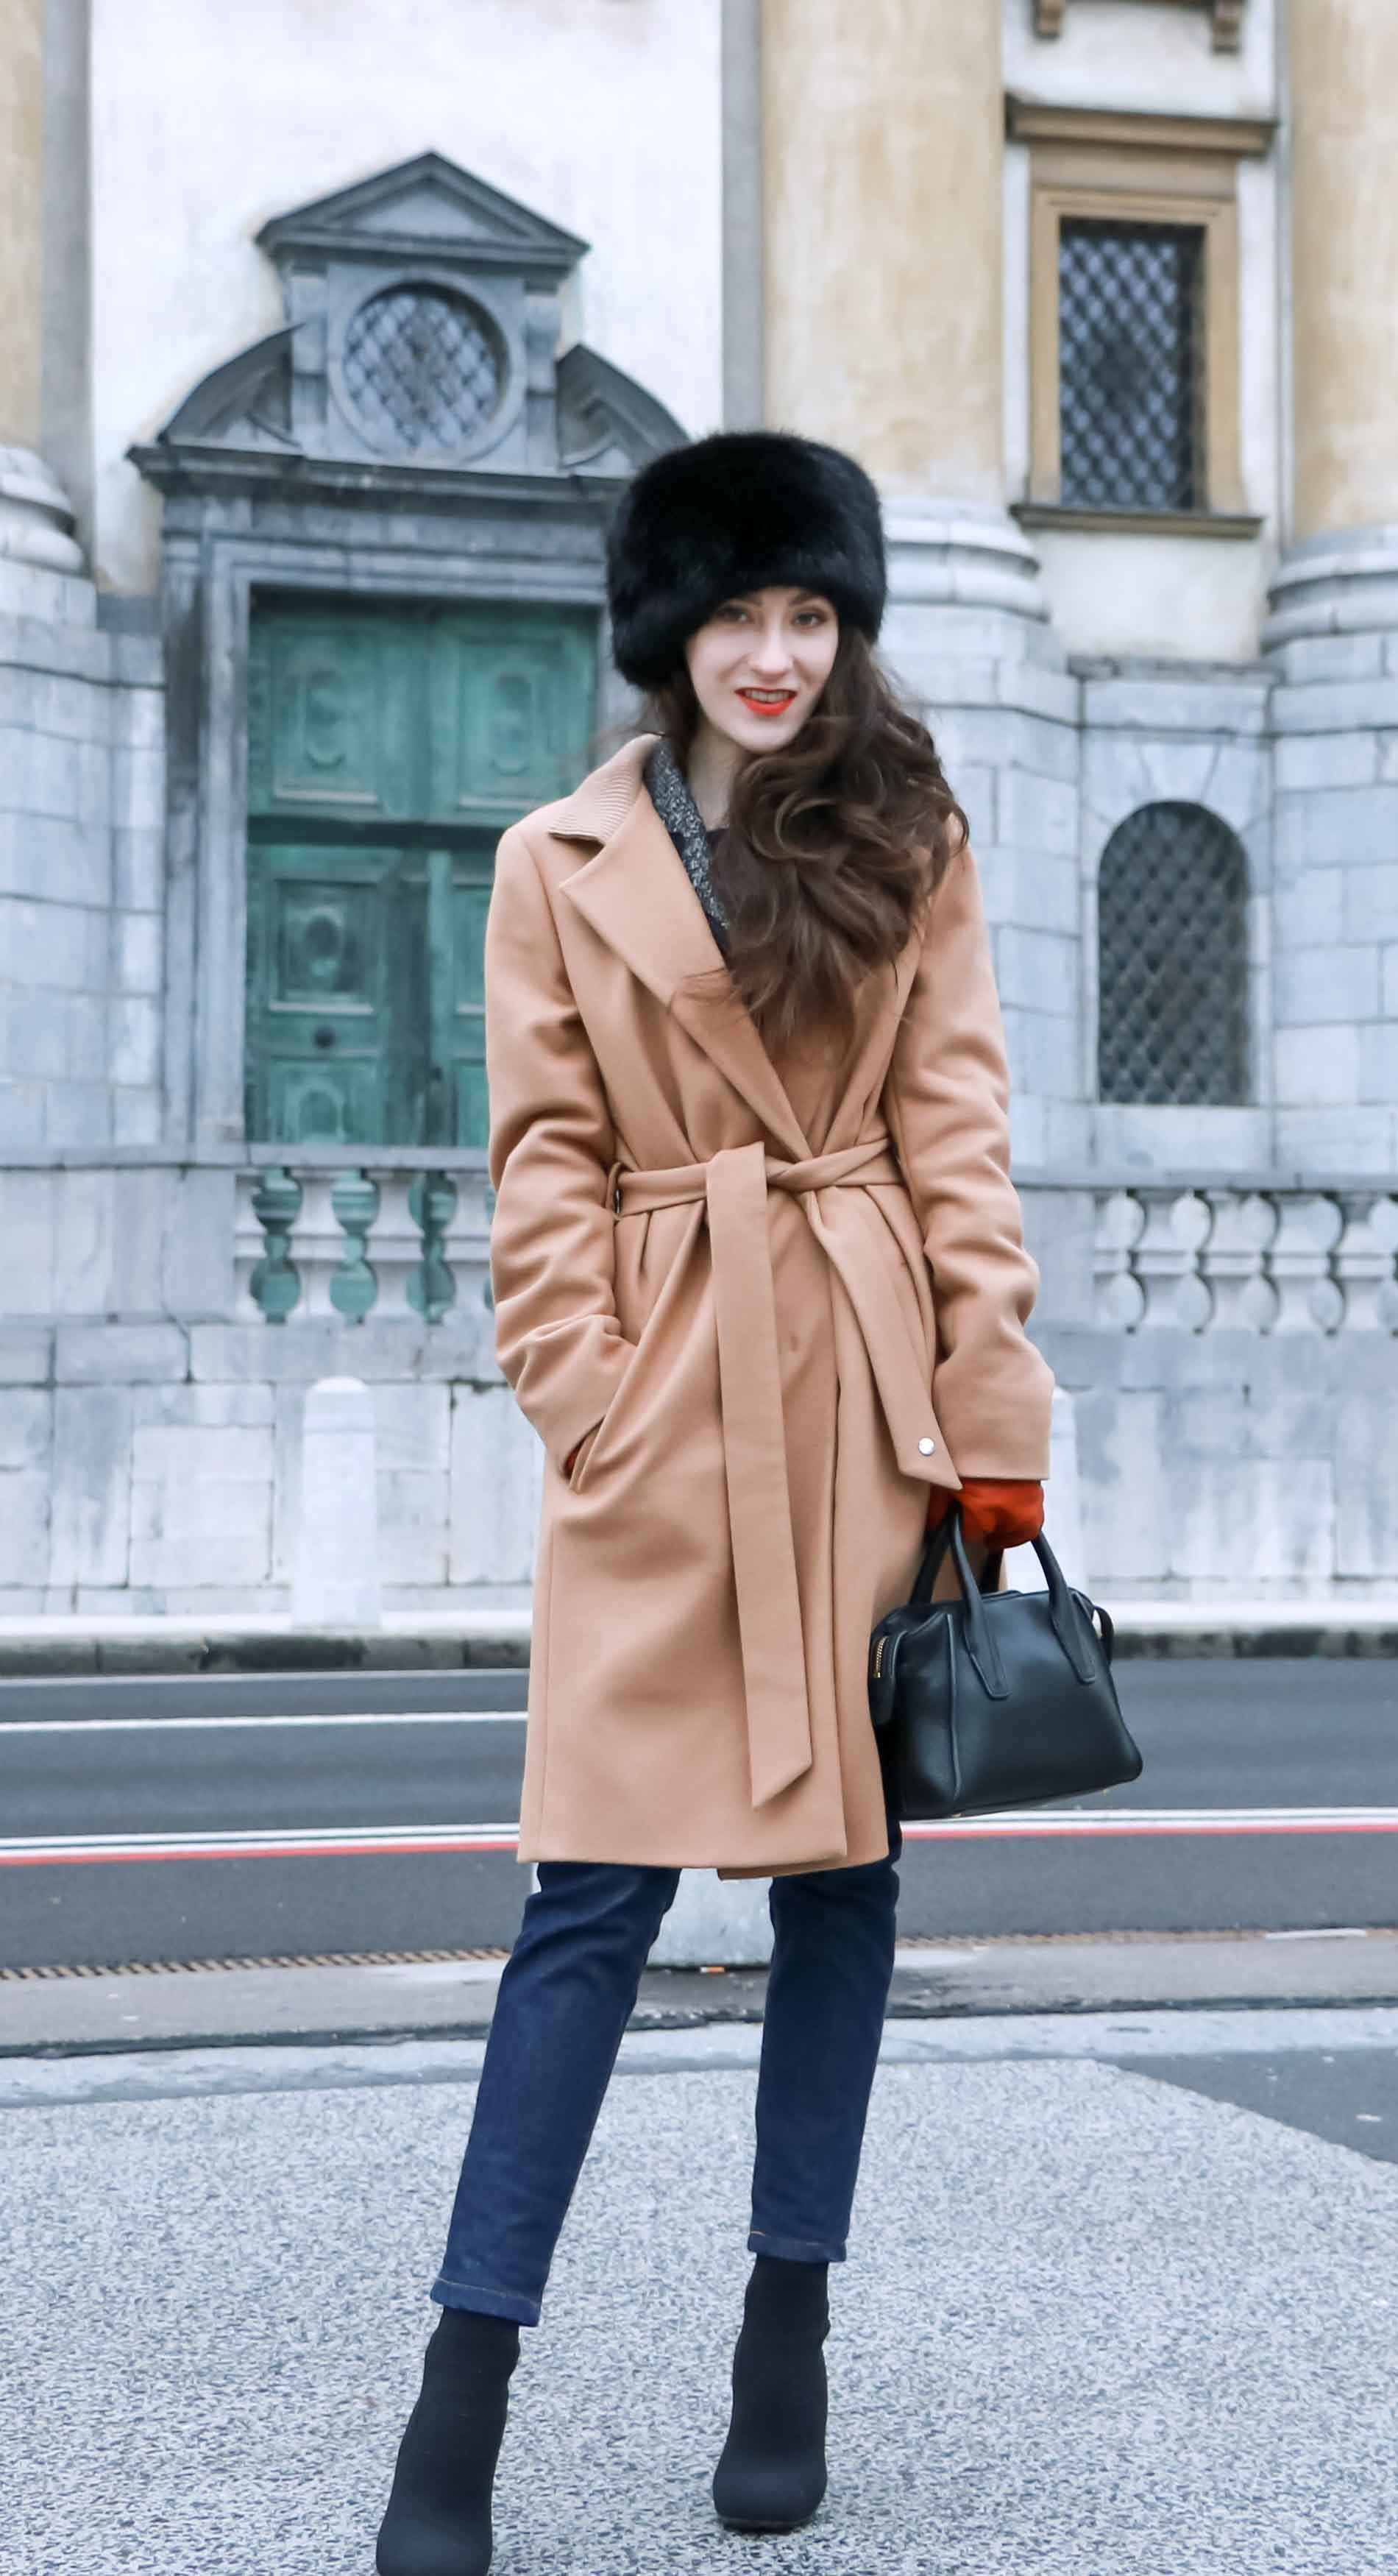 Fashion Blogger Veronika Lipar of Brunette from Wall Street wearing her on the go winter outfit